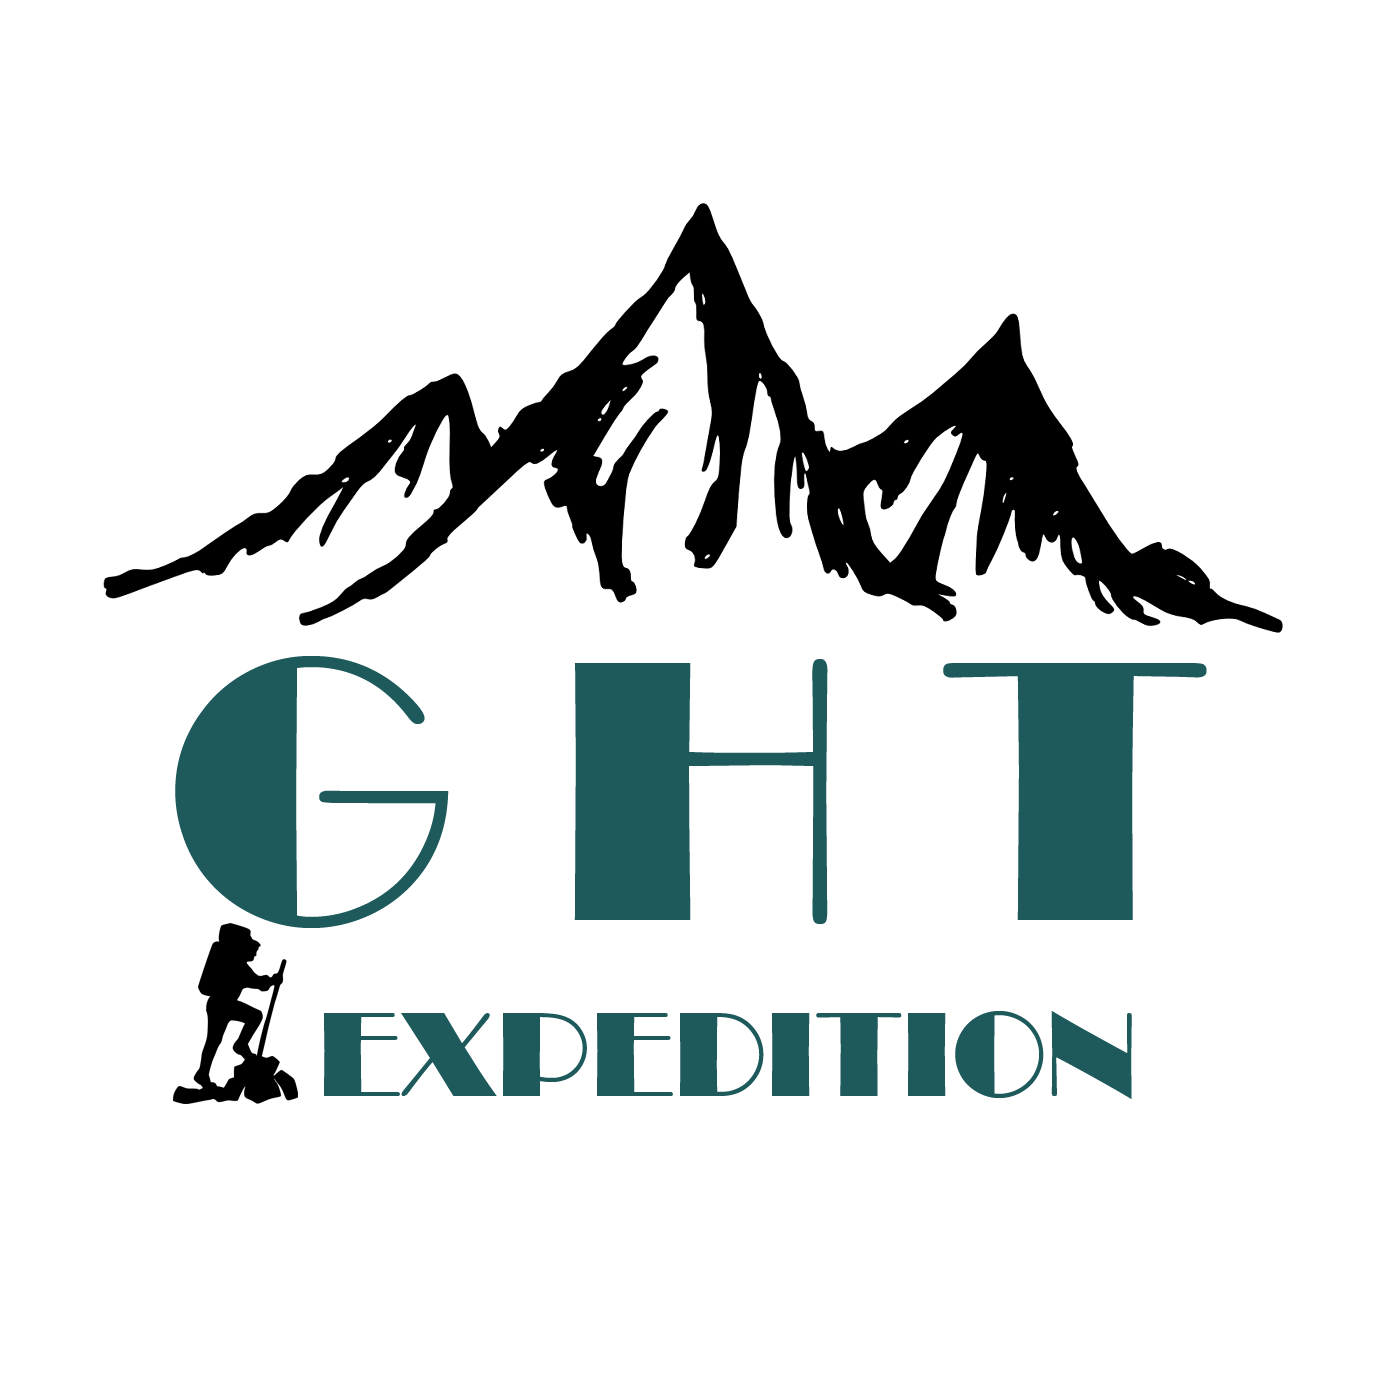 ght-expedition-1-1.png